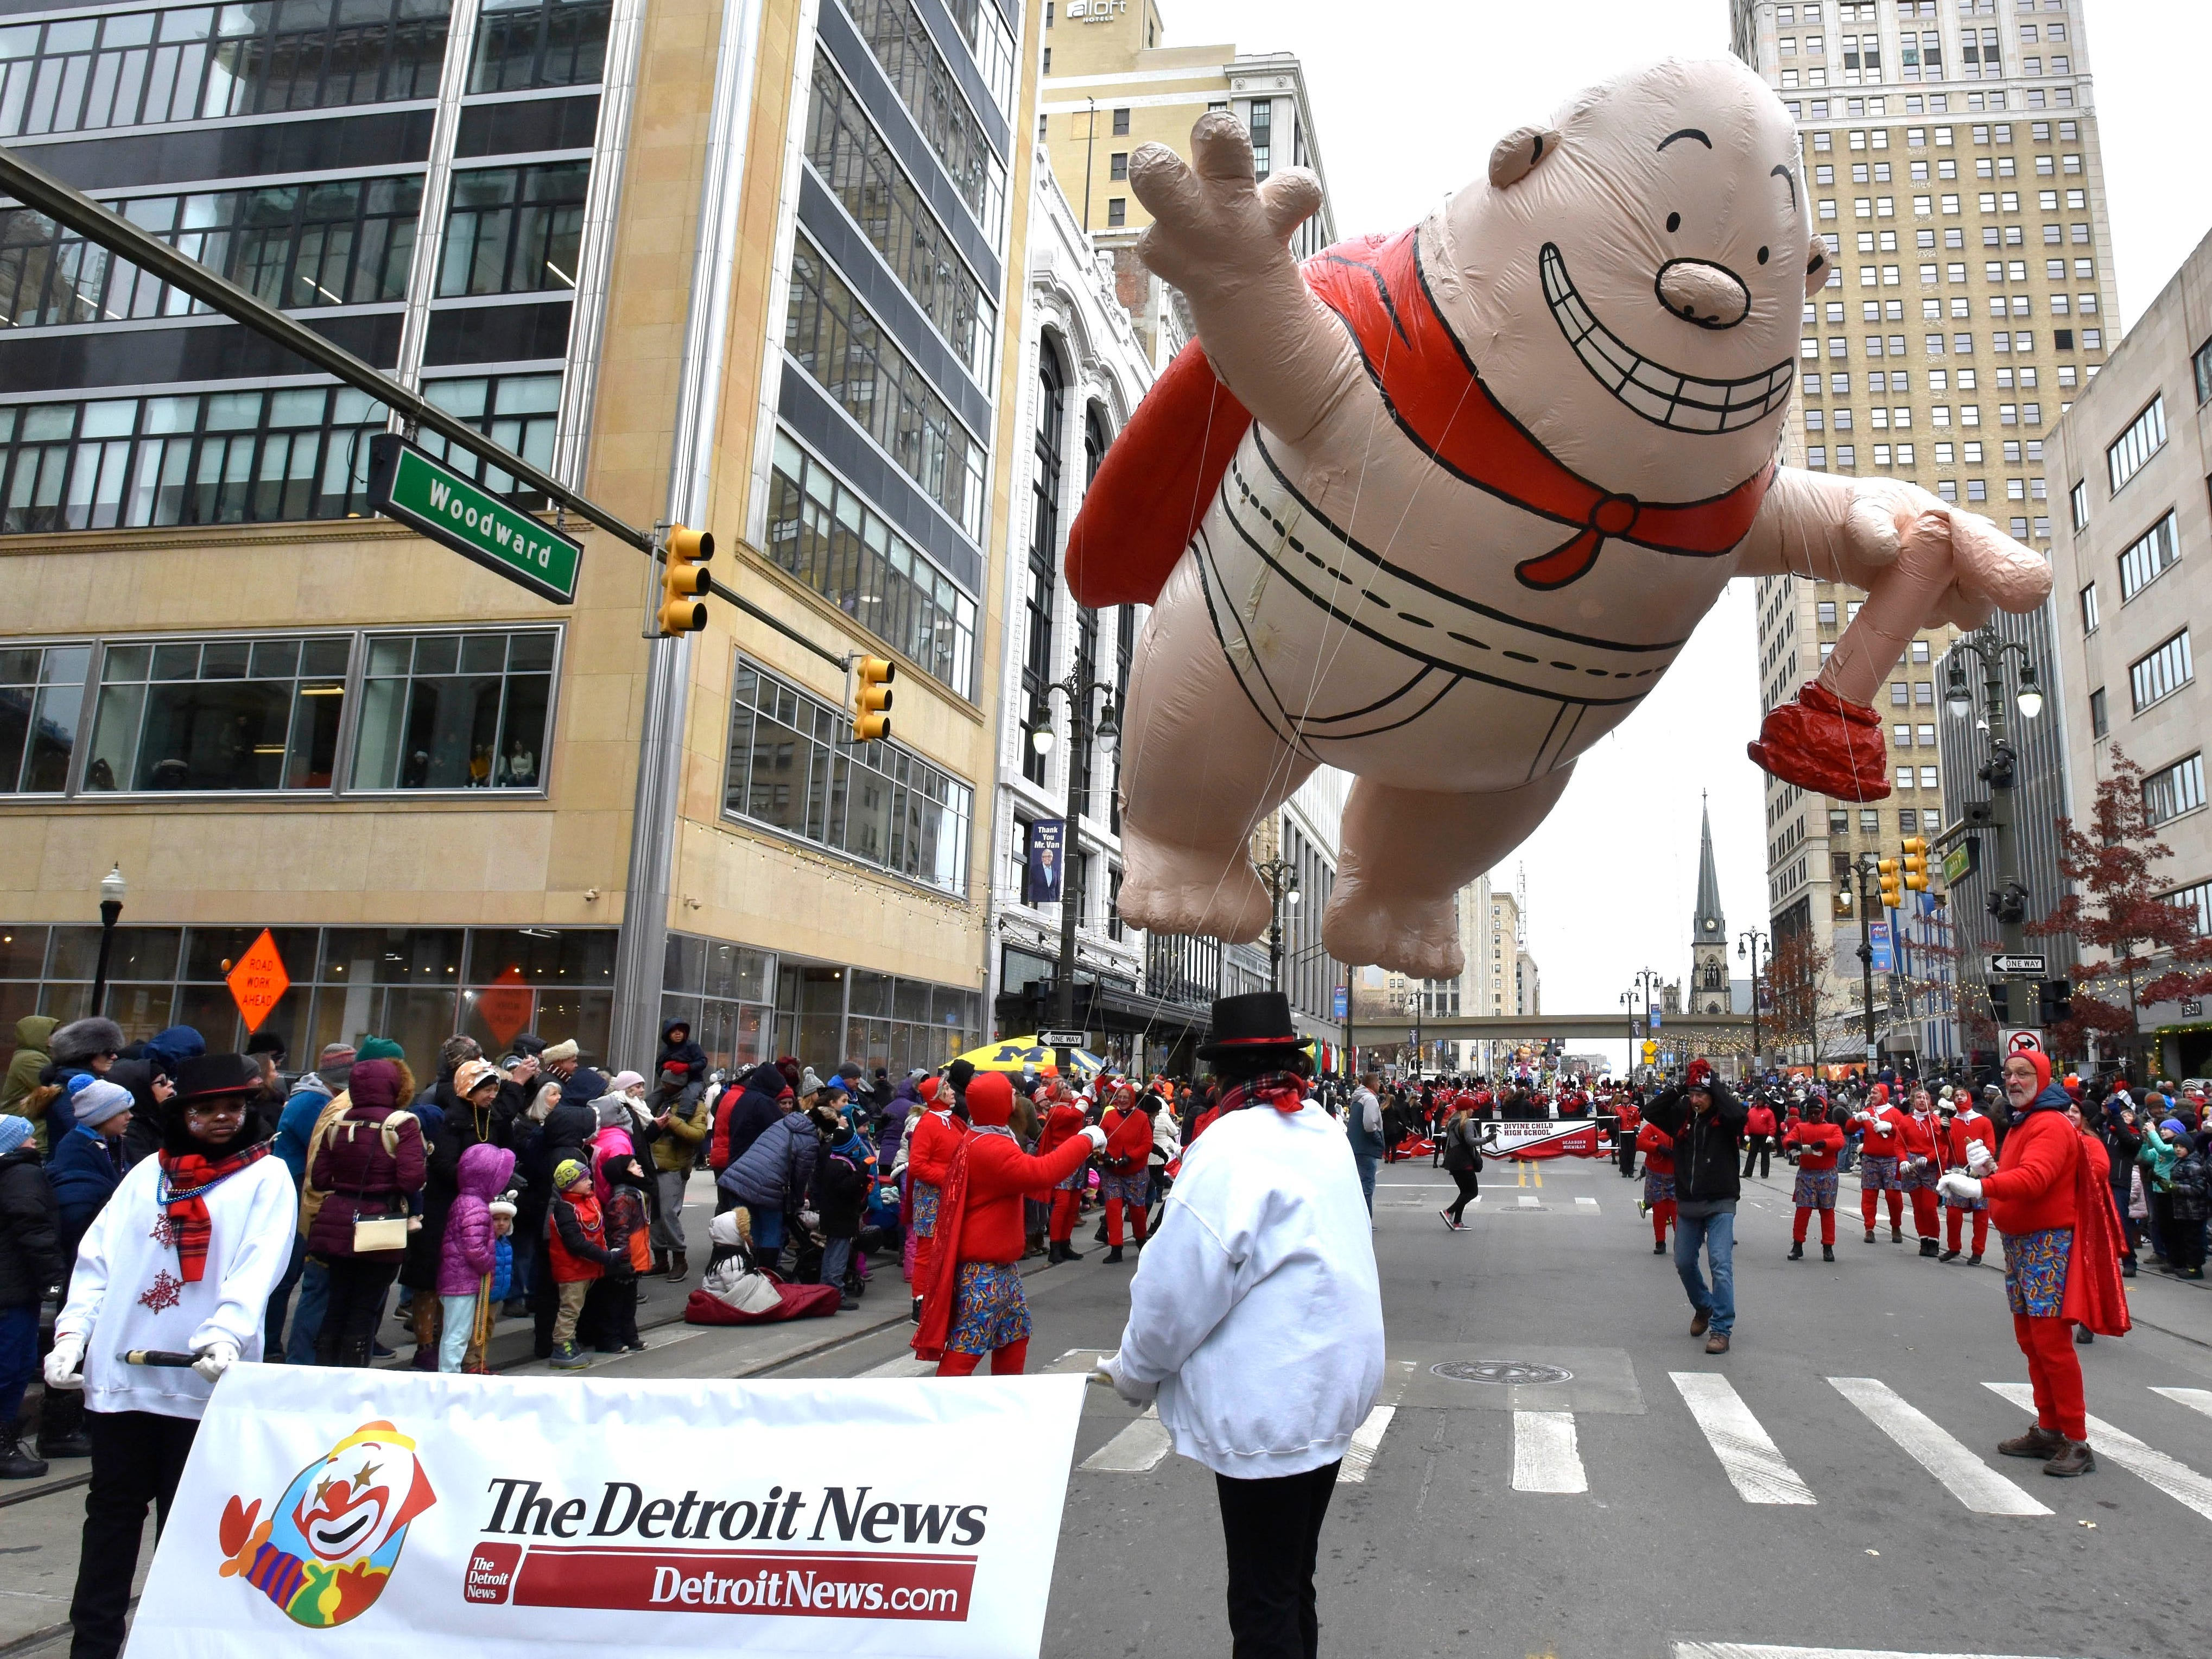 The Captain Underpants balloon is sponsored by The Detroit News.